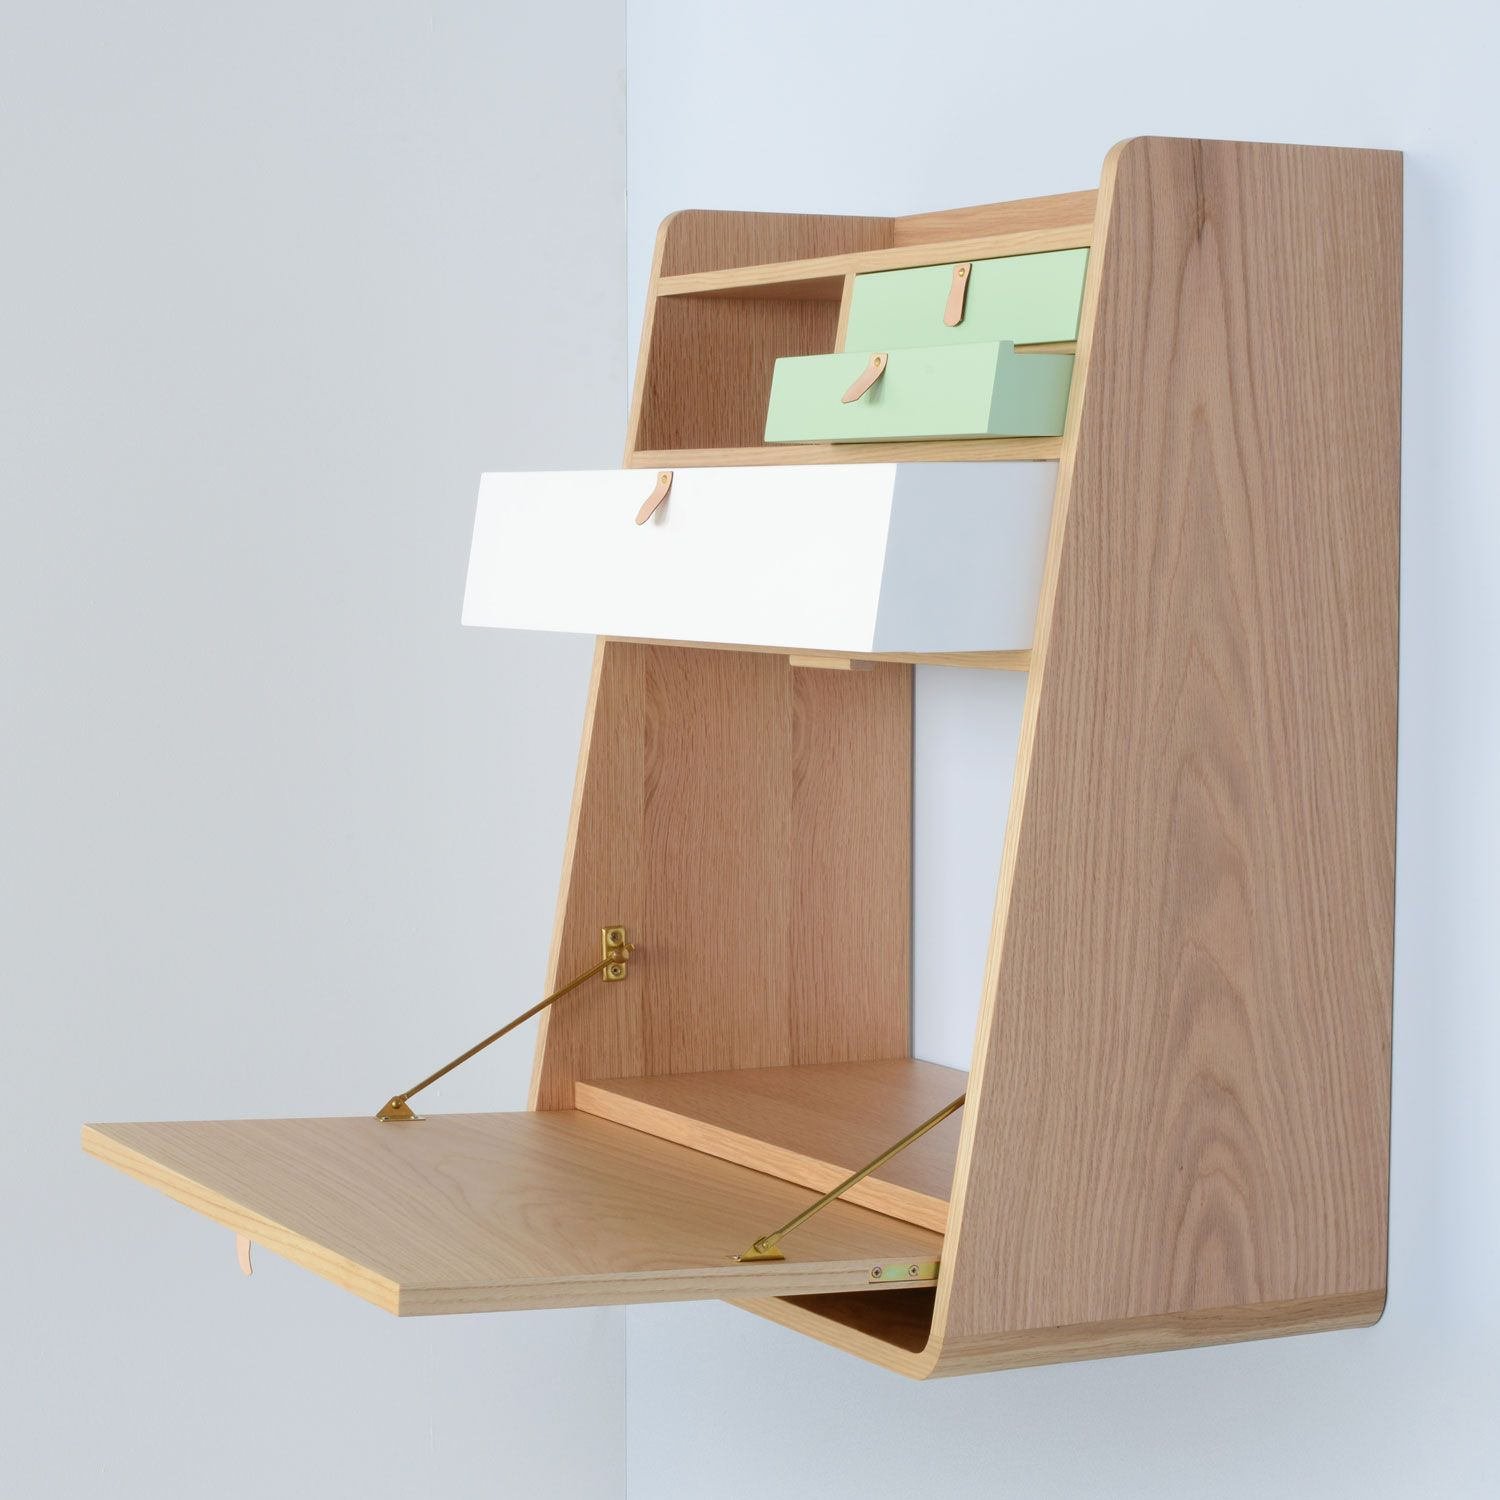 Living Spaces Office Furniture: Small Spaces, Smart Living. Ambrose Gaston Wall Bureau